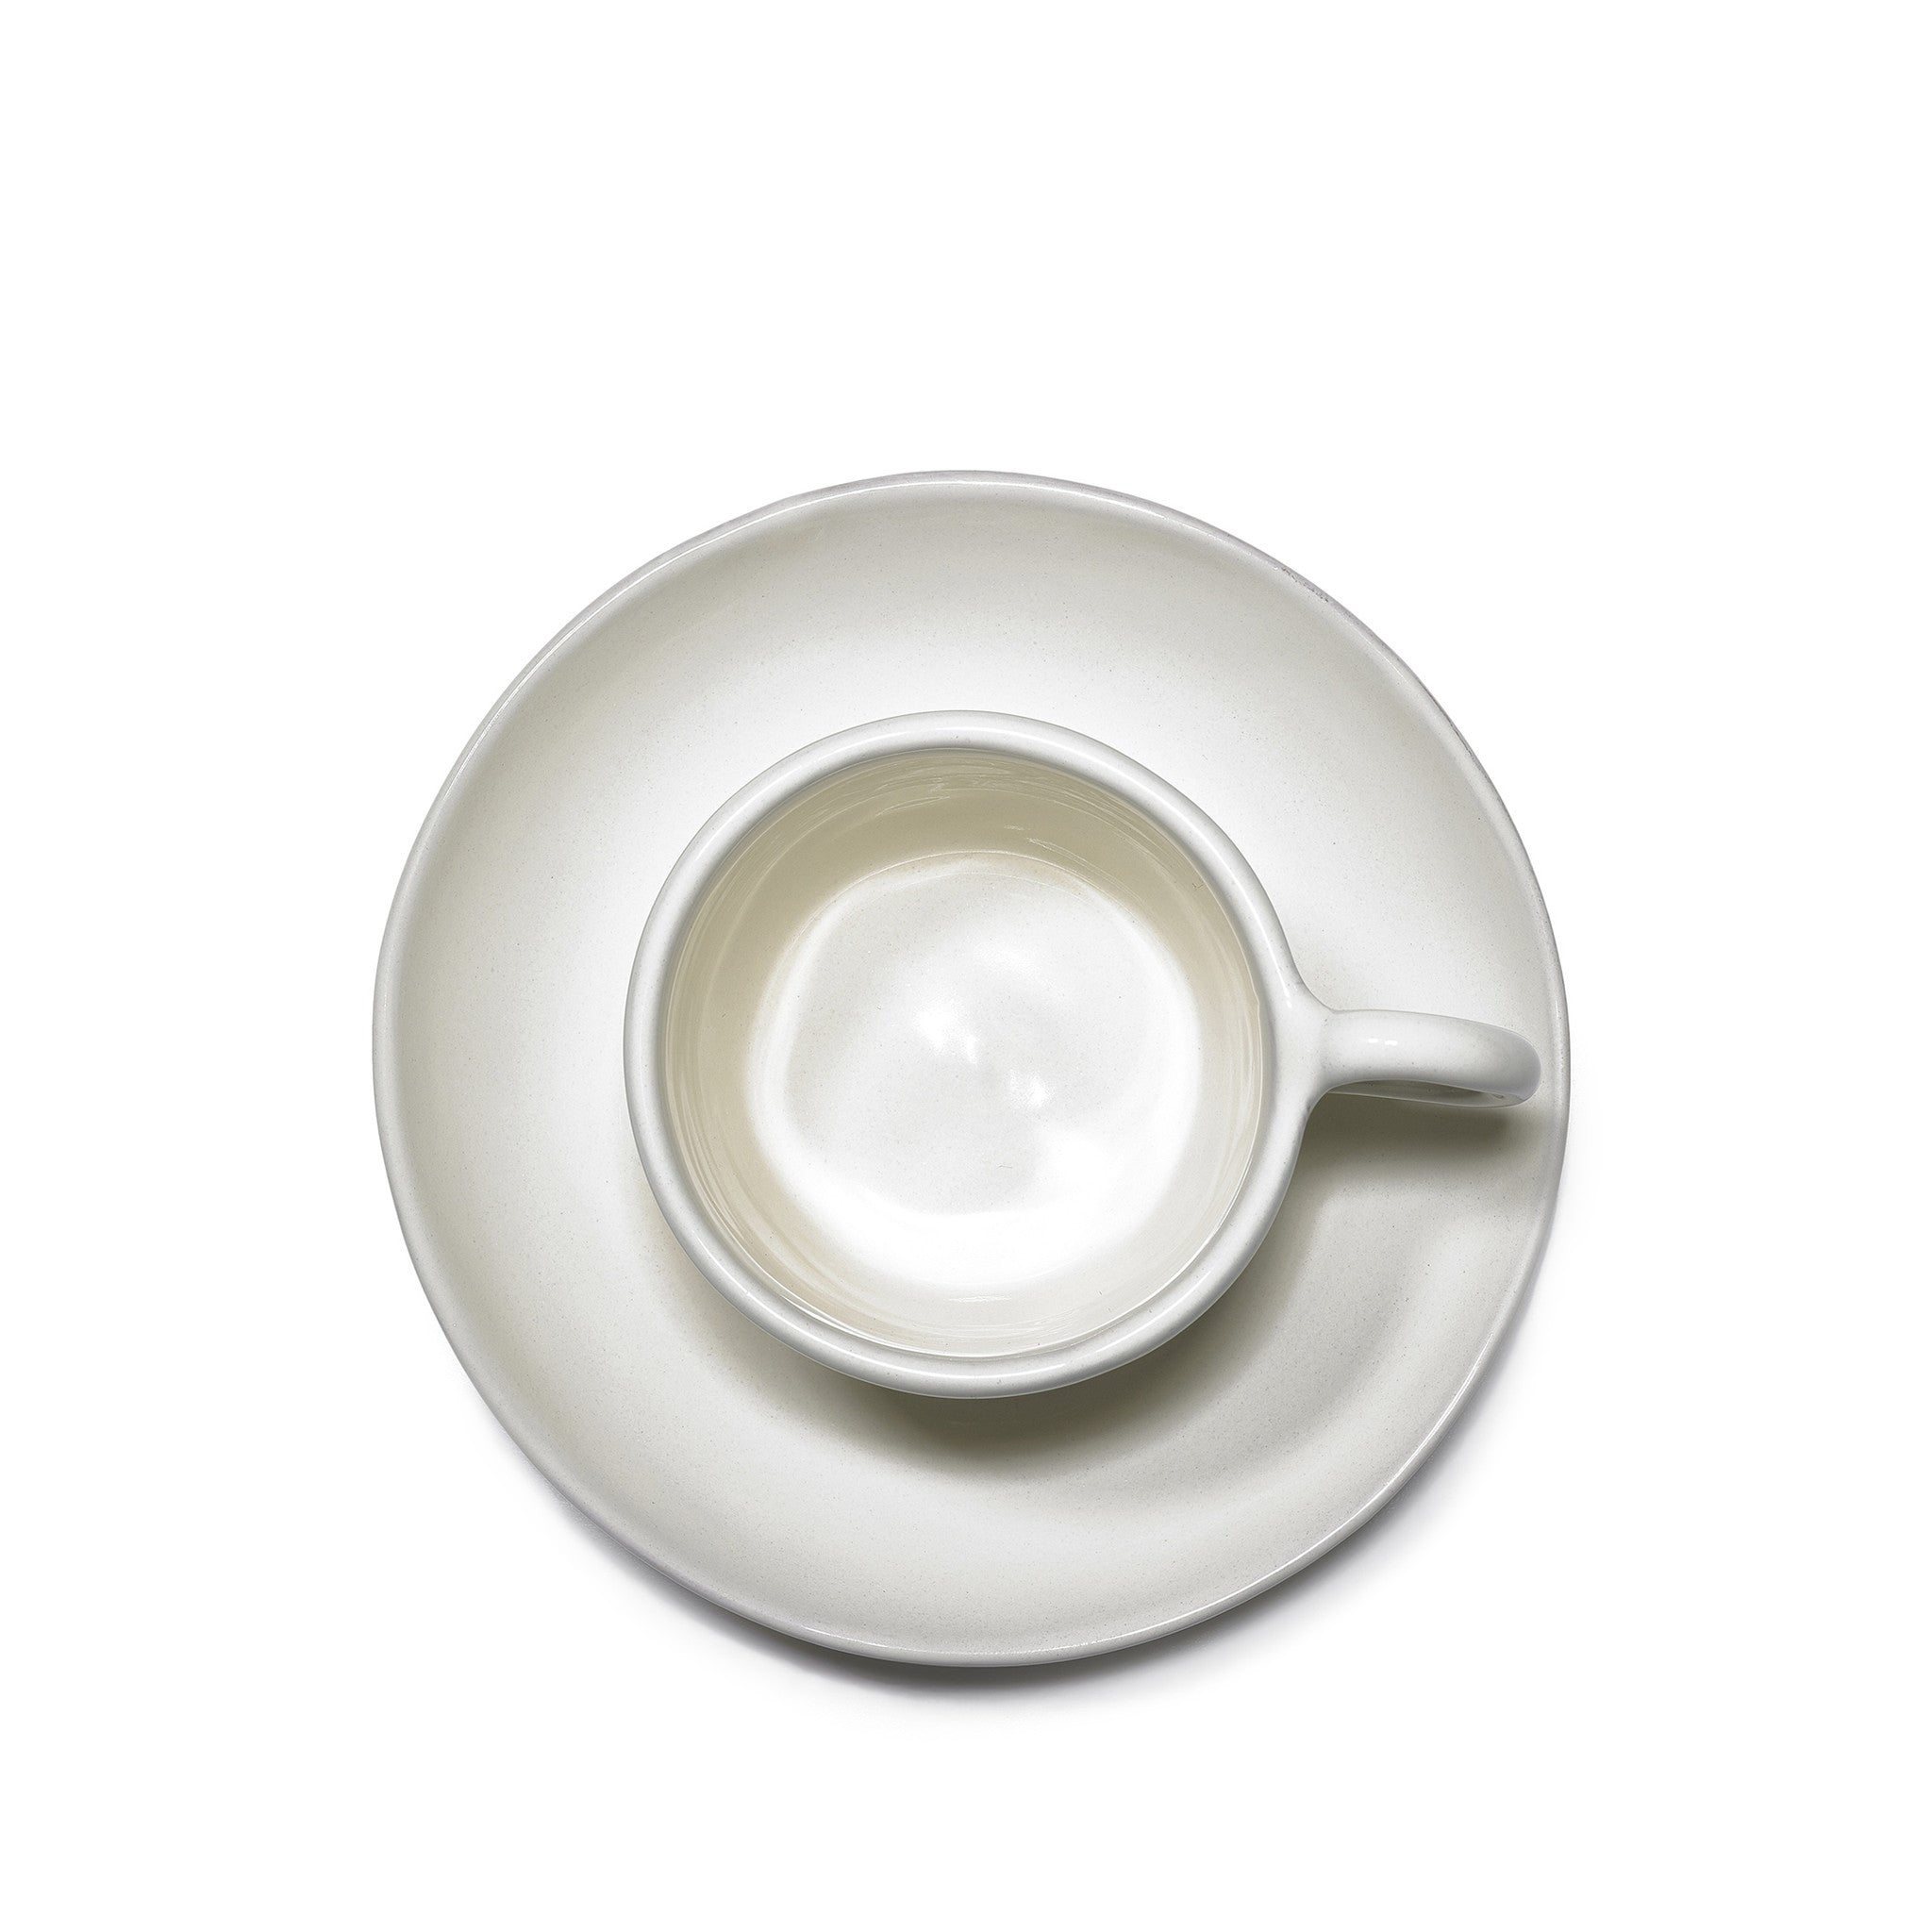 Espresso Cup and Saucer in Ivory